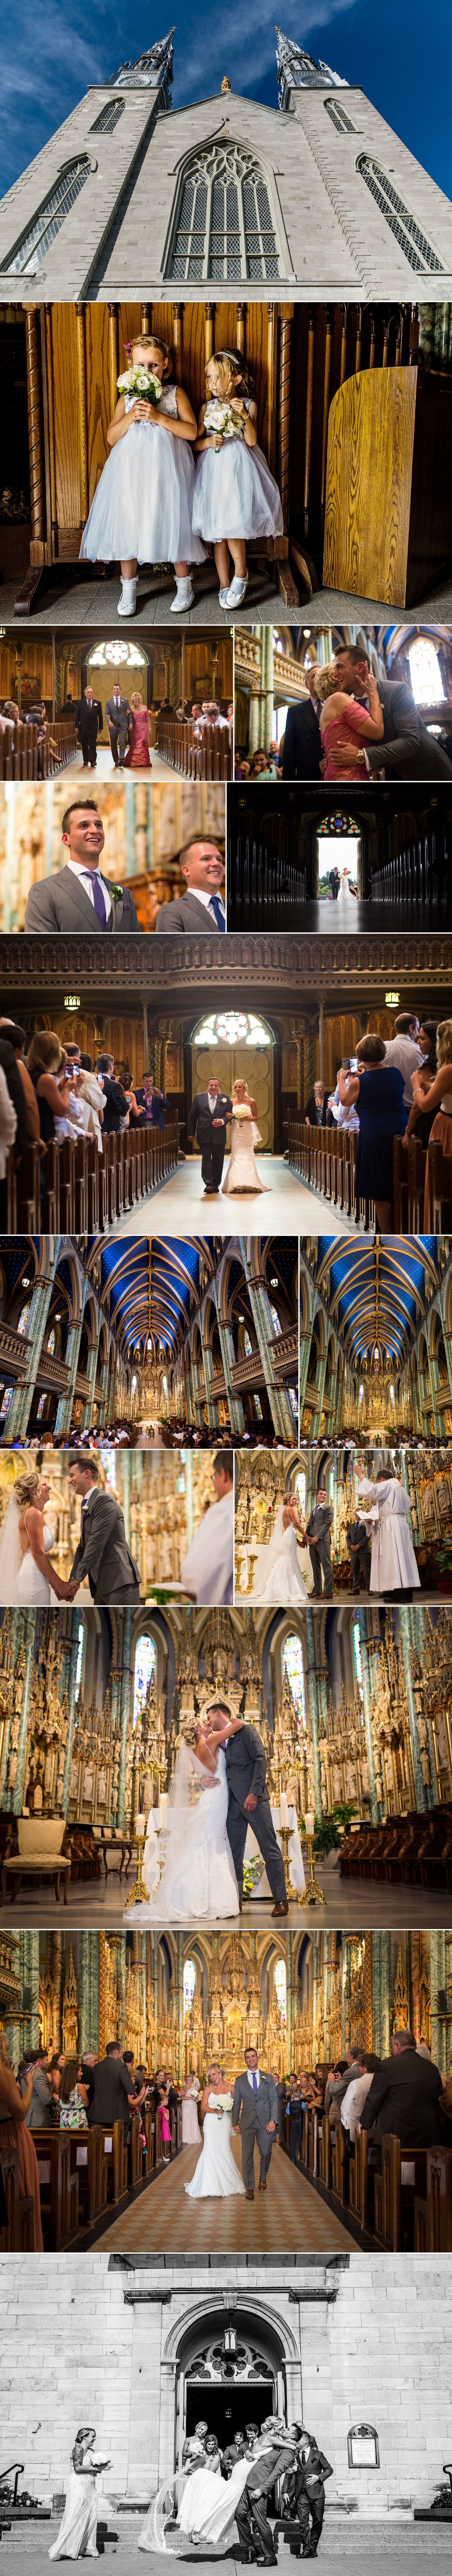 Notre Dame Basilica wedding ceremony photographs